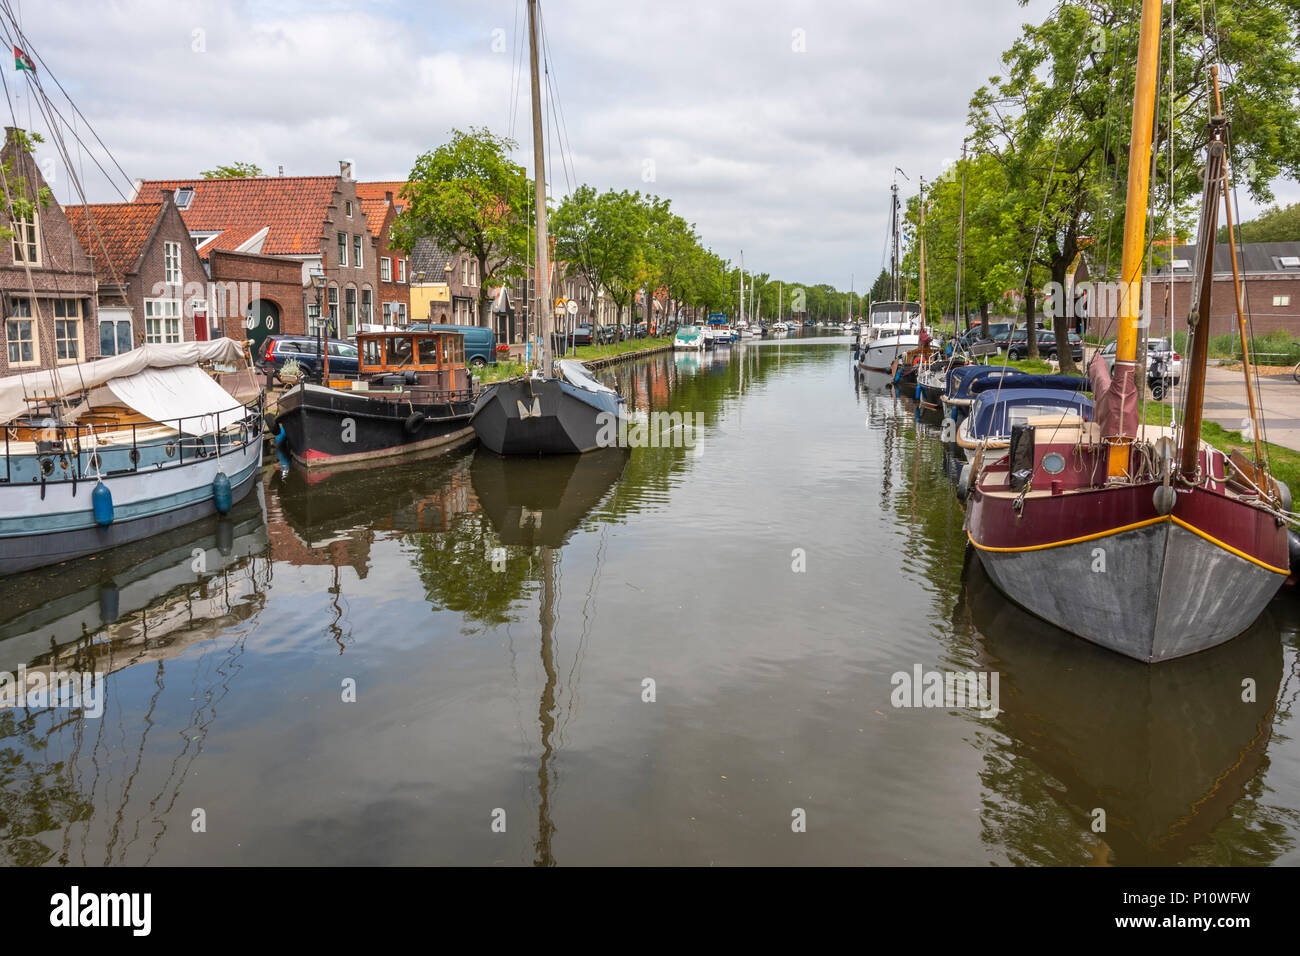 canal and boats with houses on the sides of them in the city of edam. netherlands - Stock Image